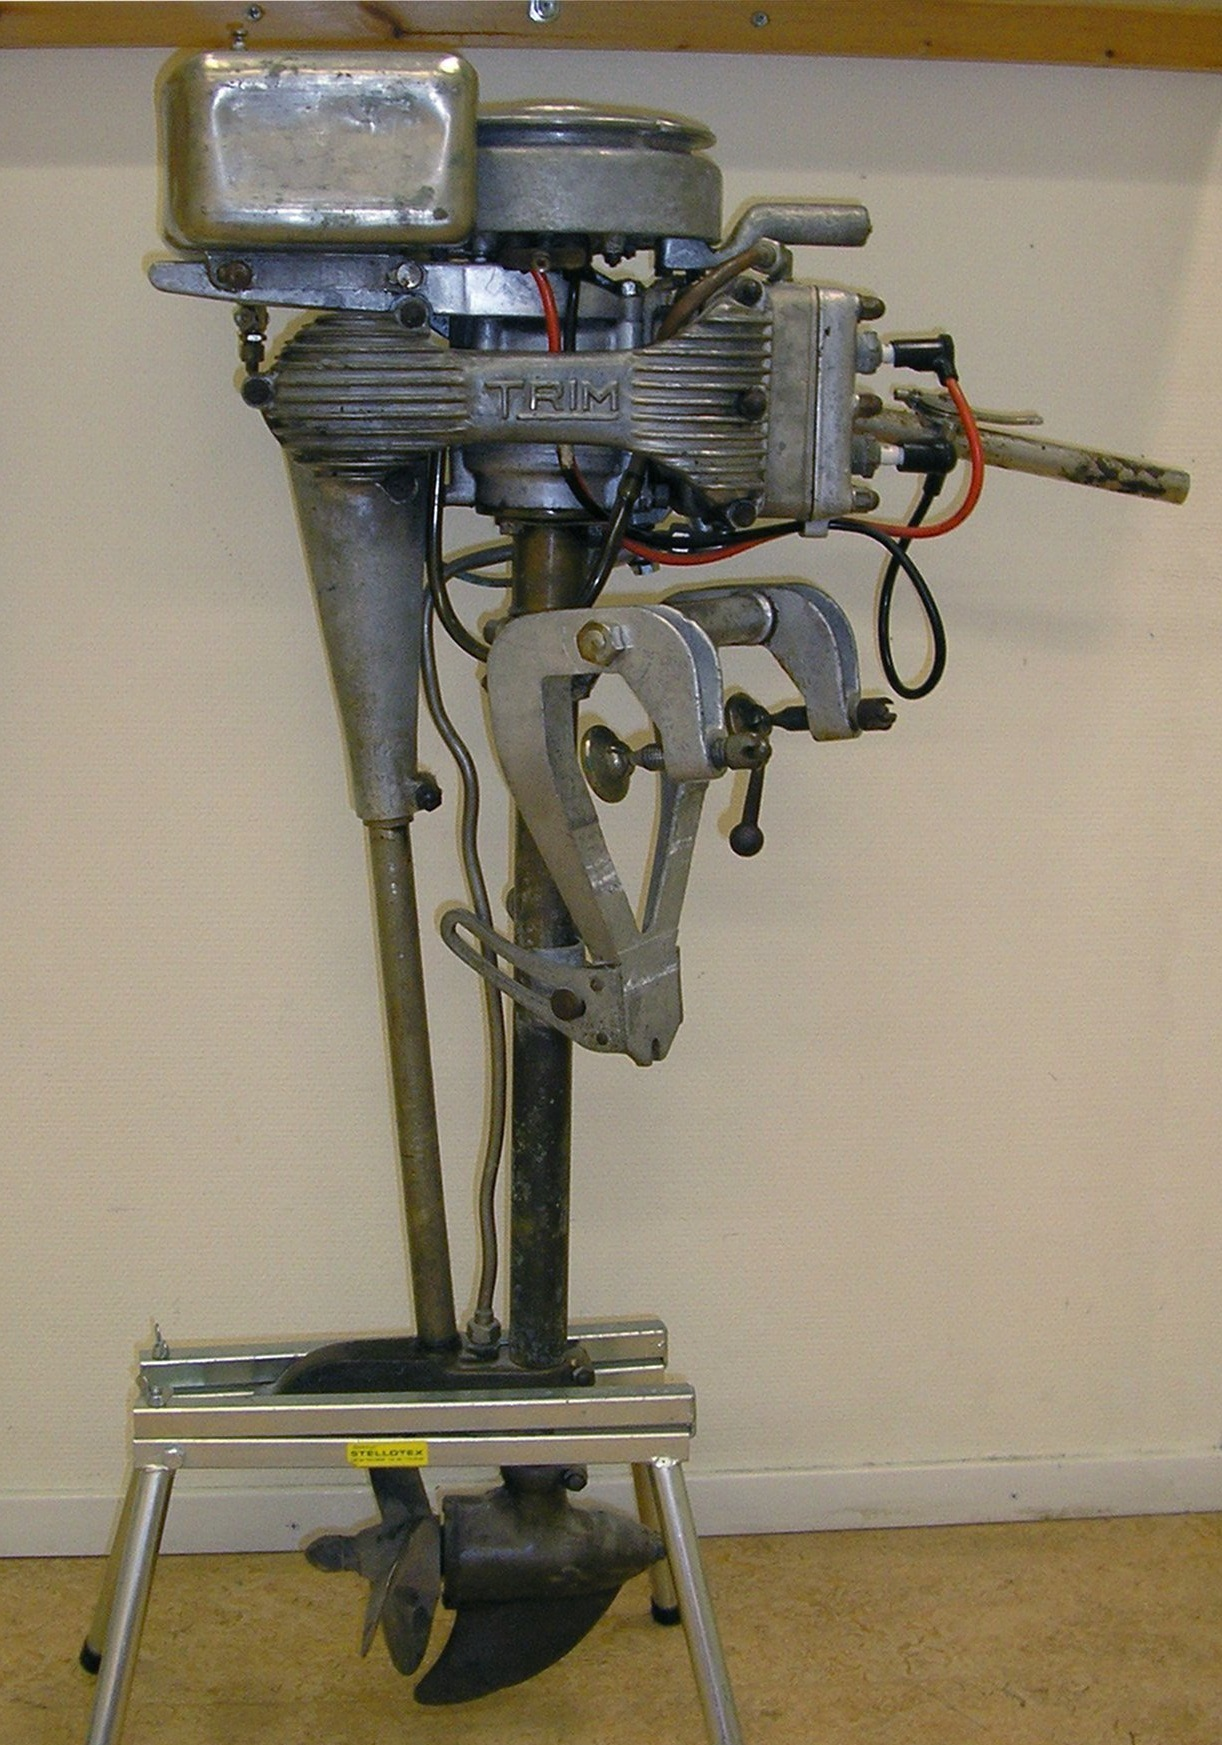 File trim outboard wikimedia commons for Power trim motor for johnson outboard